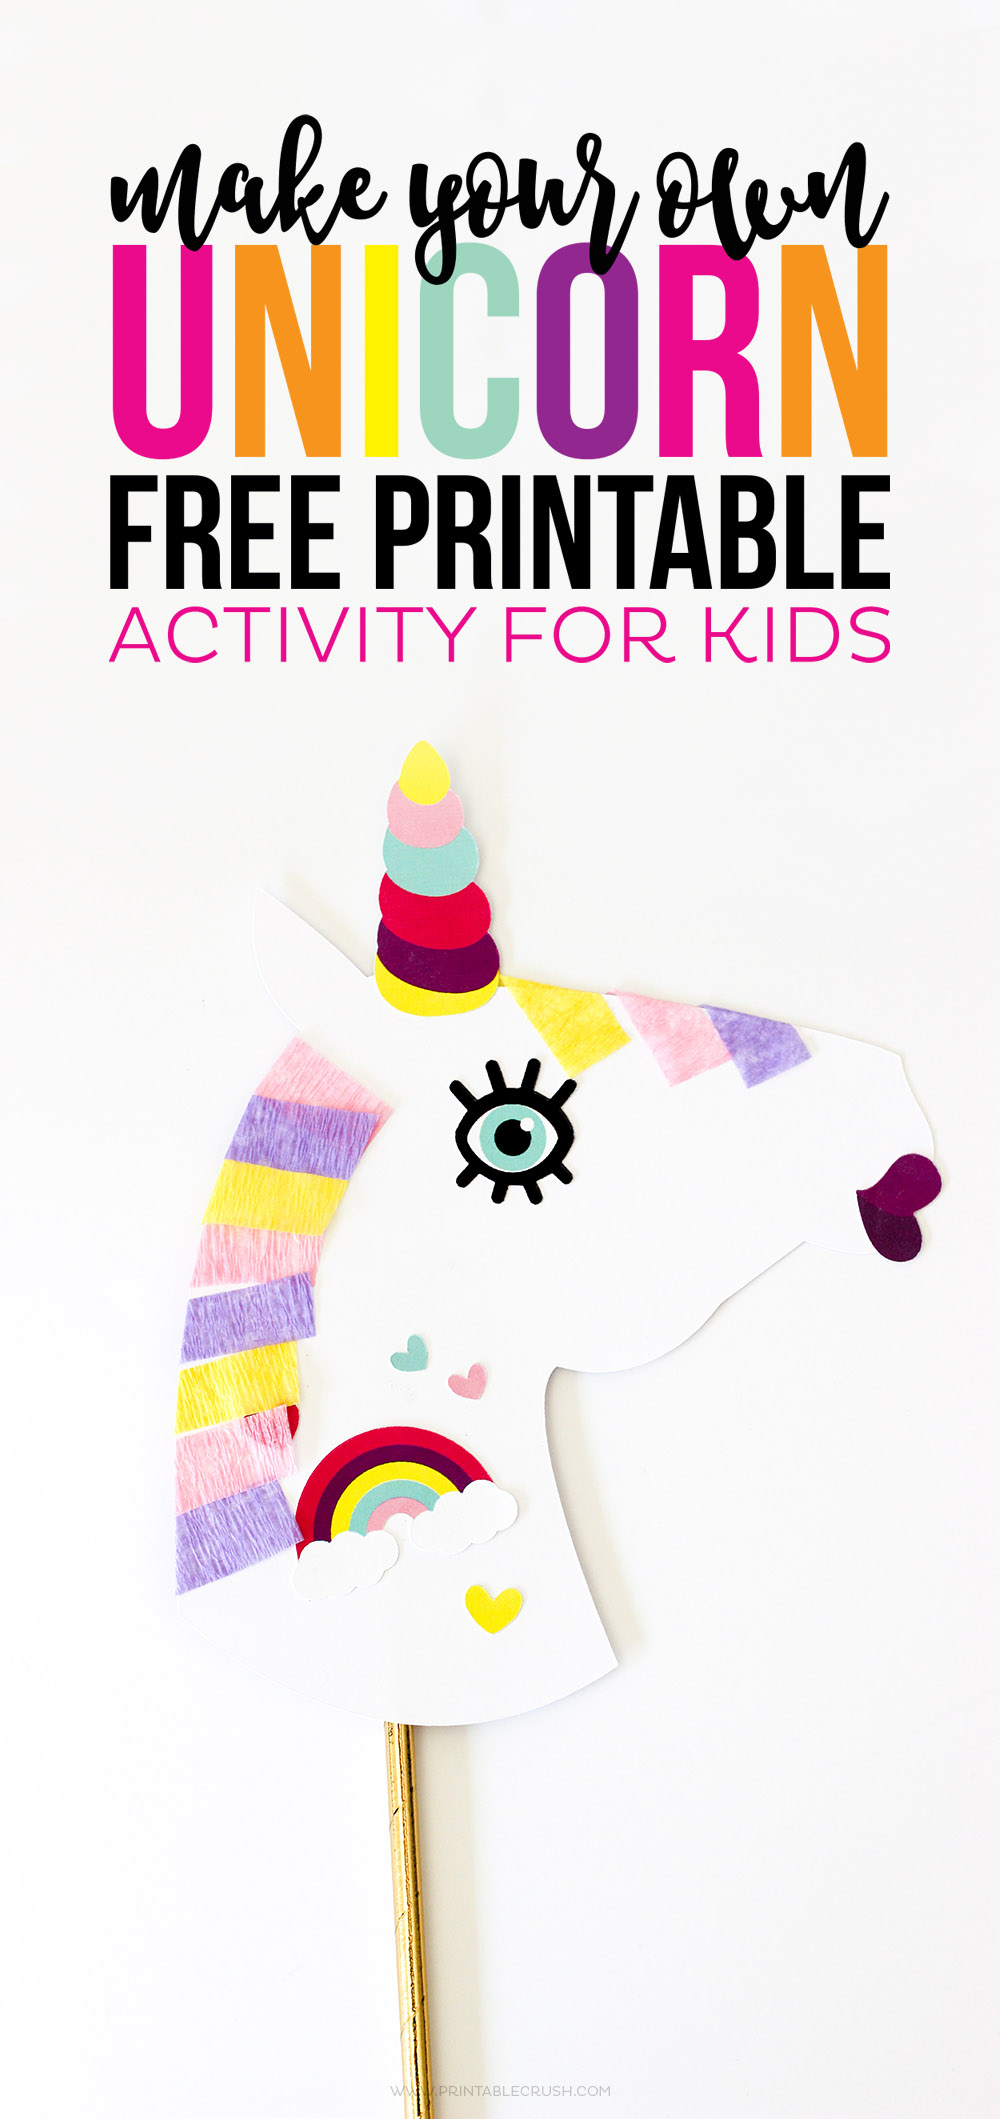 make your own unicorn free printable is the perfect activity for kids that are home all